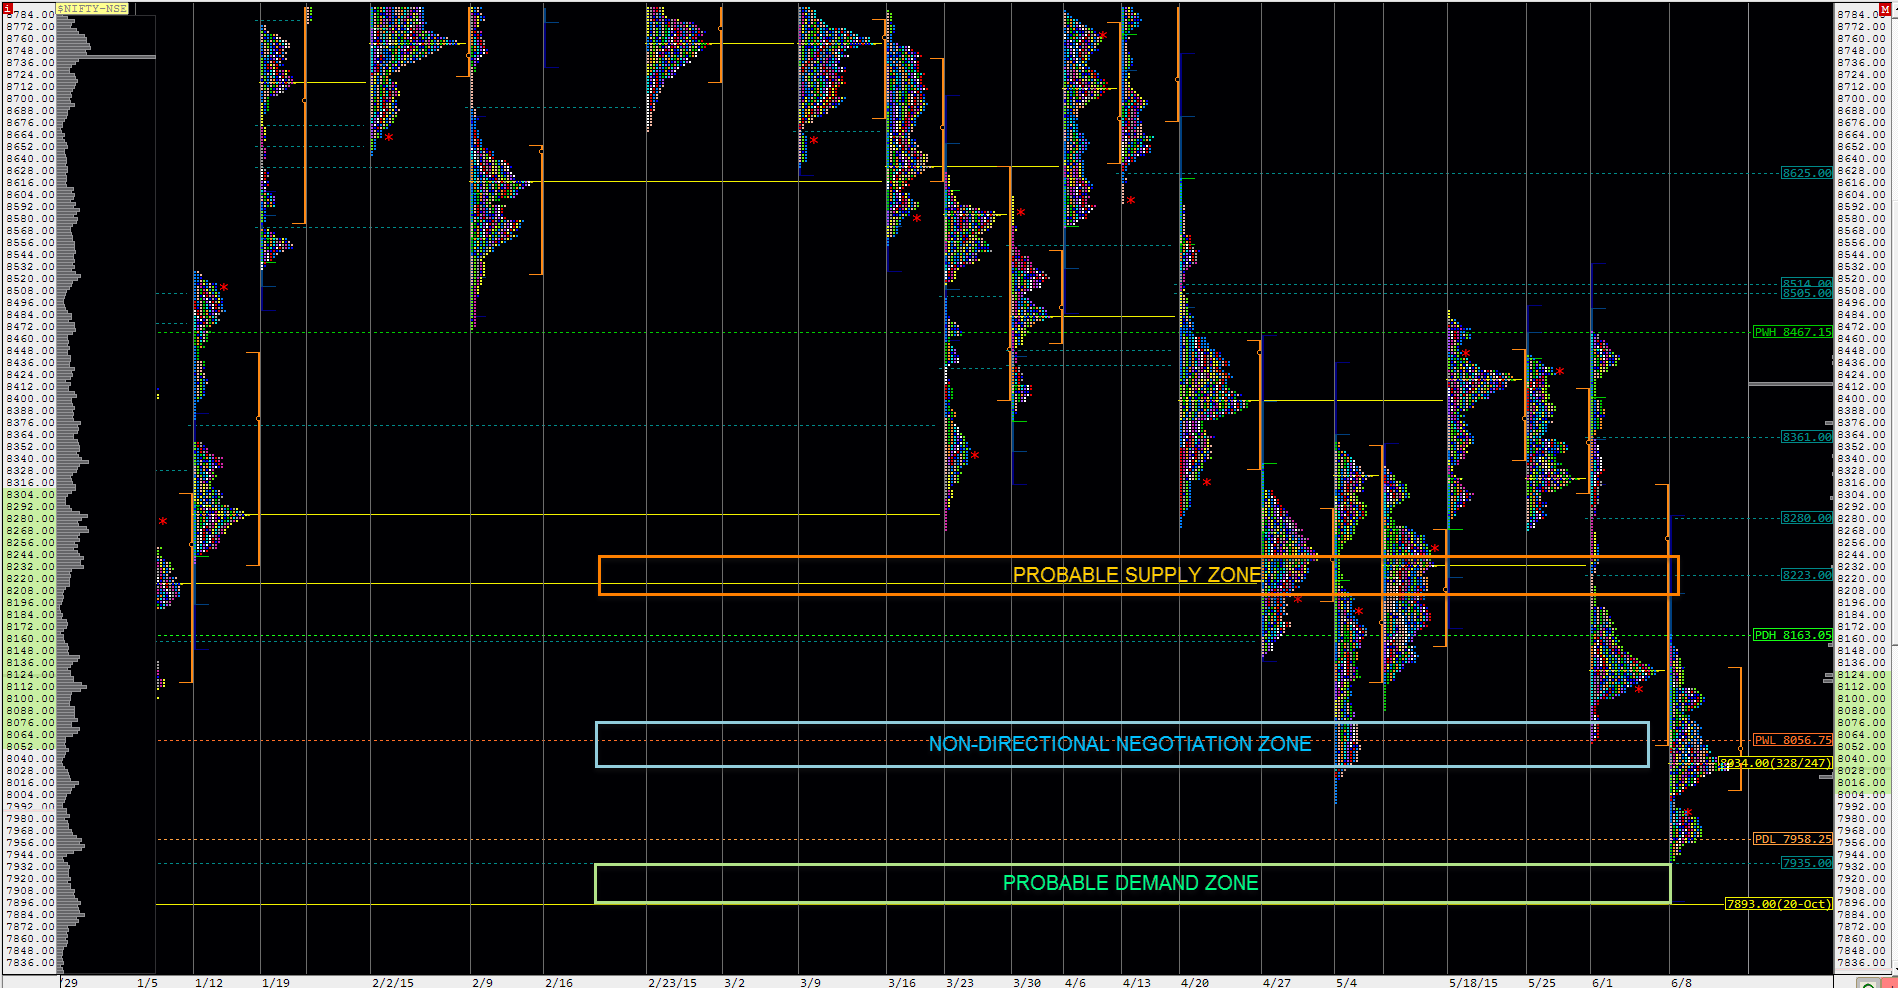 Nifty Spot Week Composite Market Profile for the week ended 12-06-2015